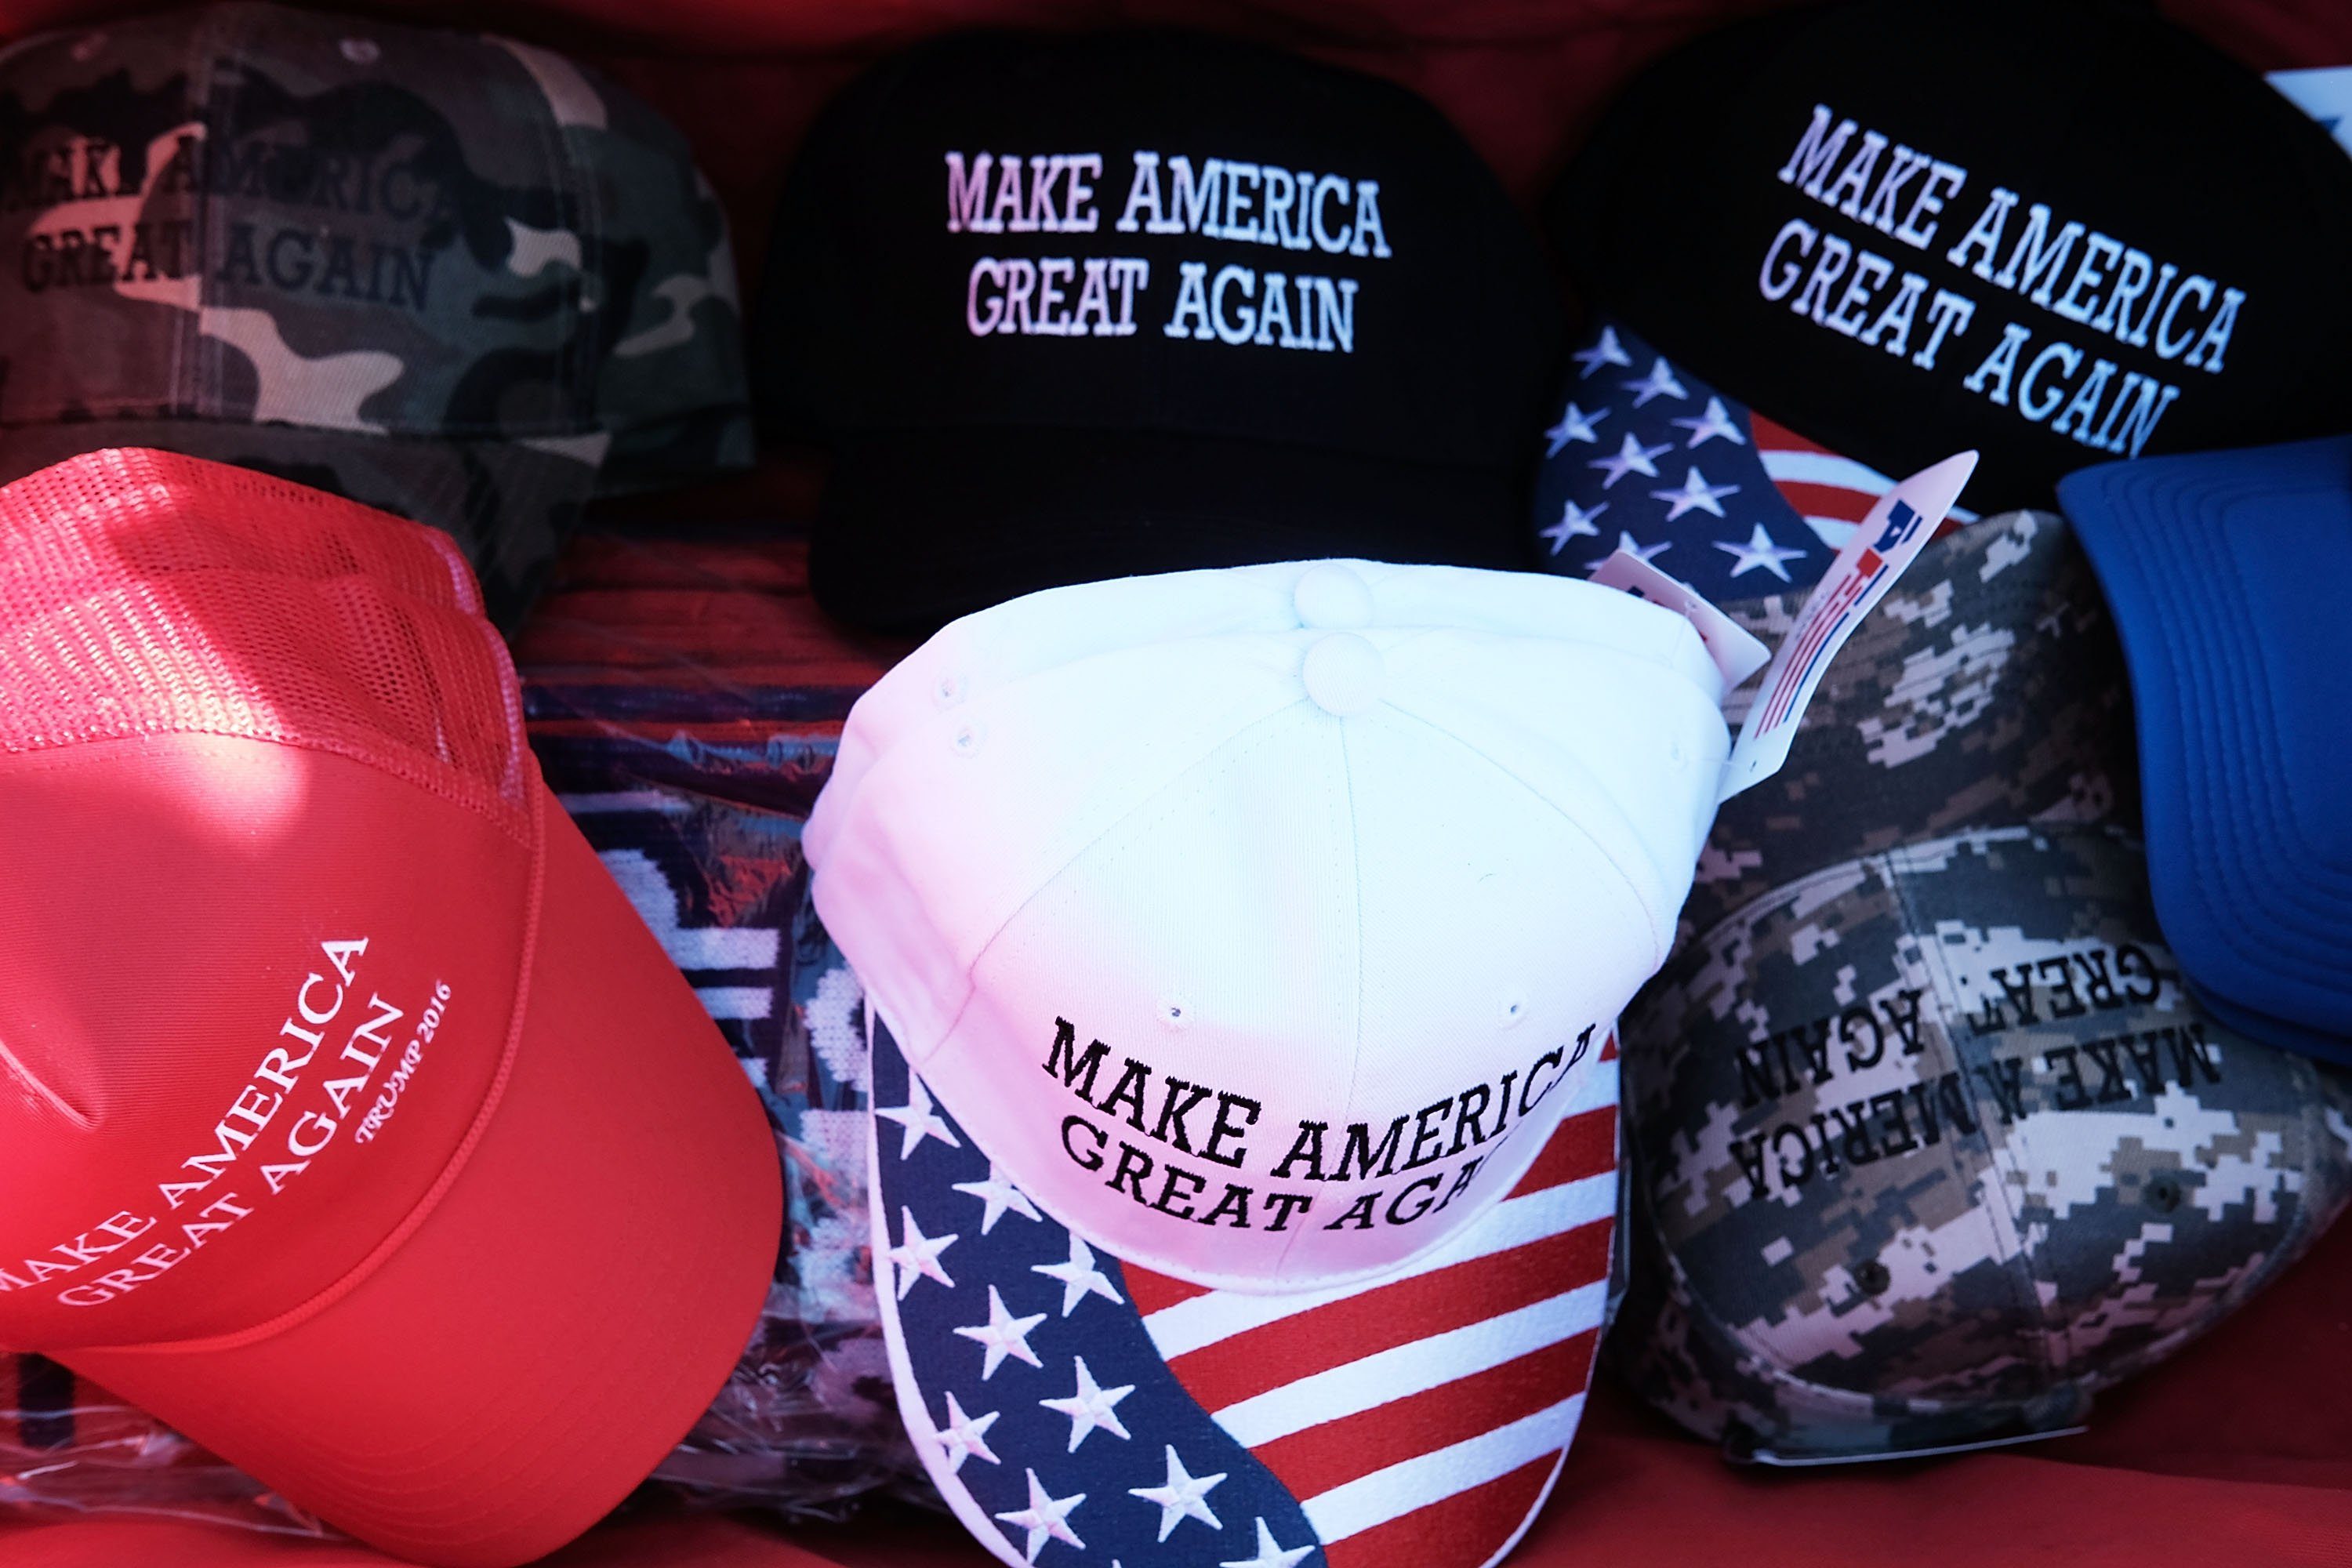 Different styles of MAGA hats being sold at a rally | Photo: Getty Images